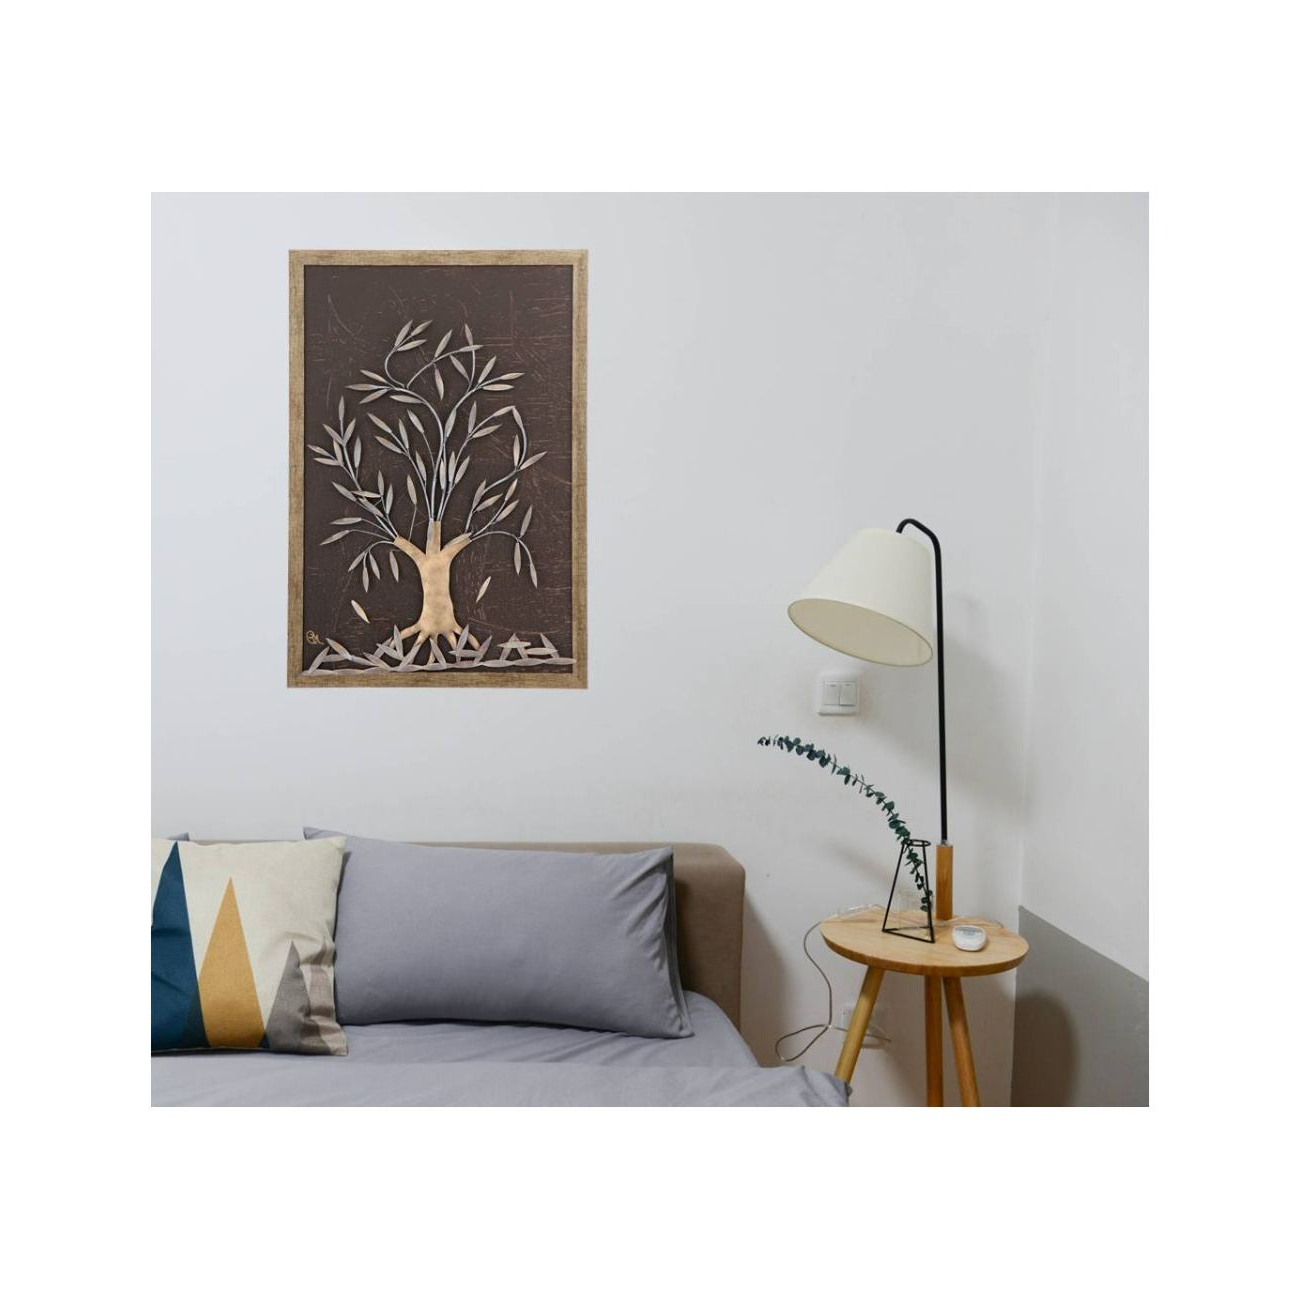 "2020 Olive Tree, 3D Handmade Wood & Metal Wall Art Framed Decor, 25"" (64Cm) Within Olive/gray Metal Wall Decor (View 1 of 20)"